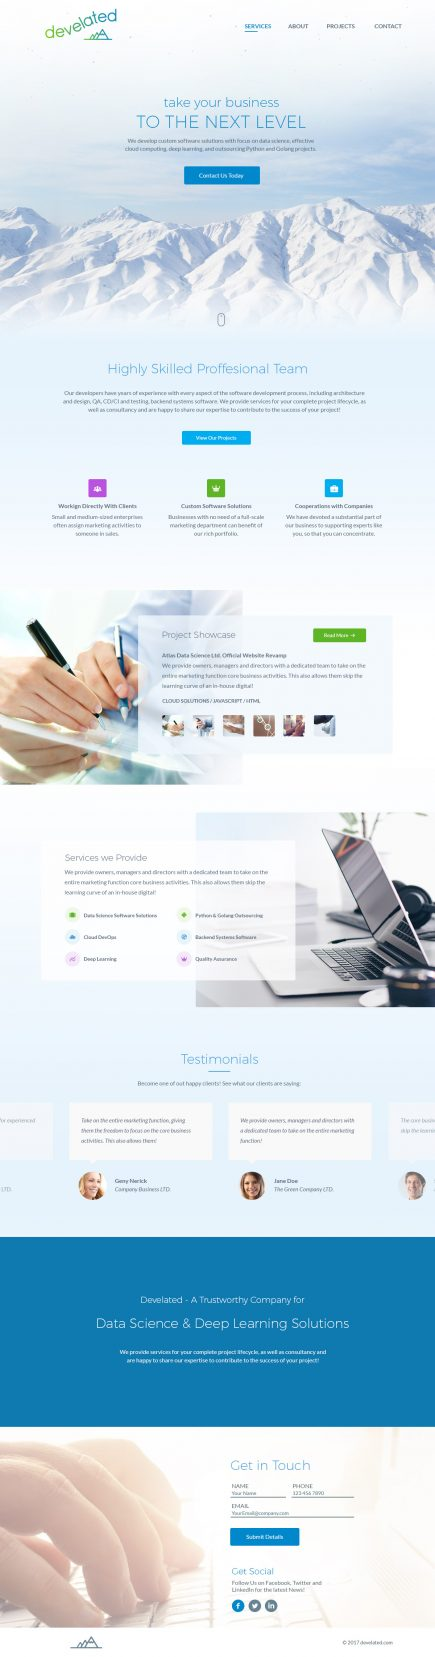 Develated - Web Design